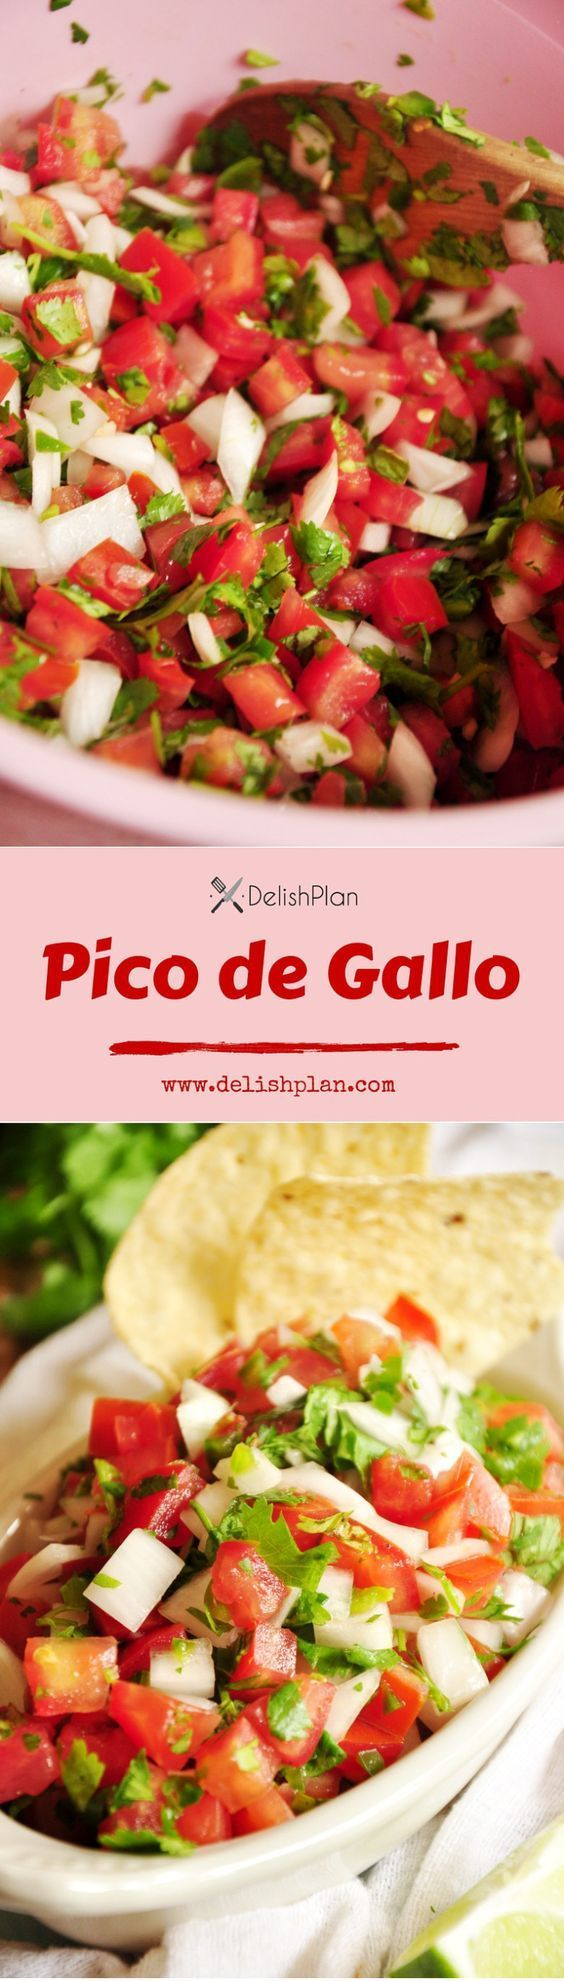 Pico de gallo recipe pico de gallo glutenfree and vegans simple and authentic pico de gallo recipe glutenfree vegan forumfinder Choice Image